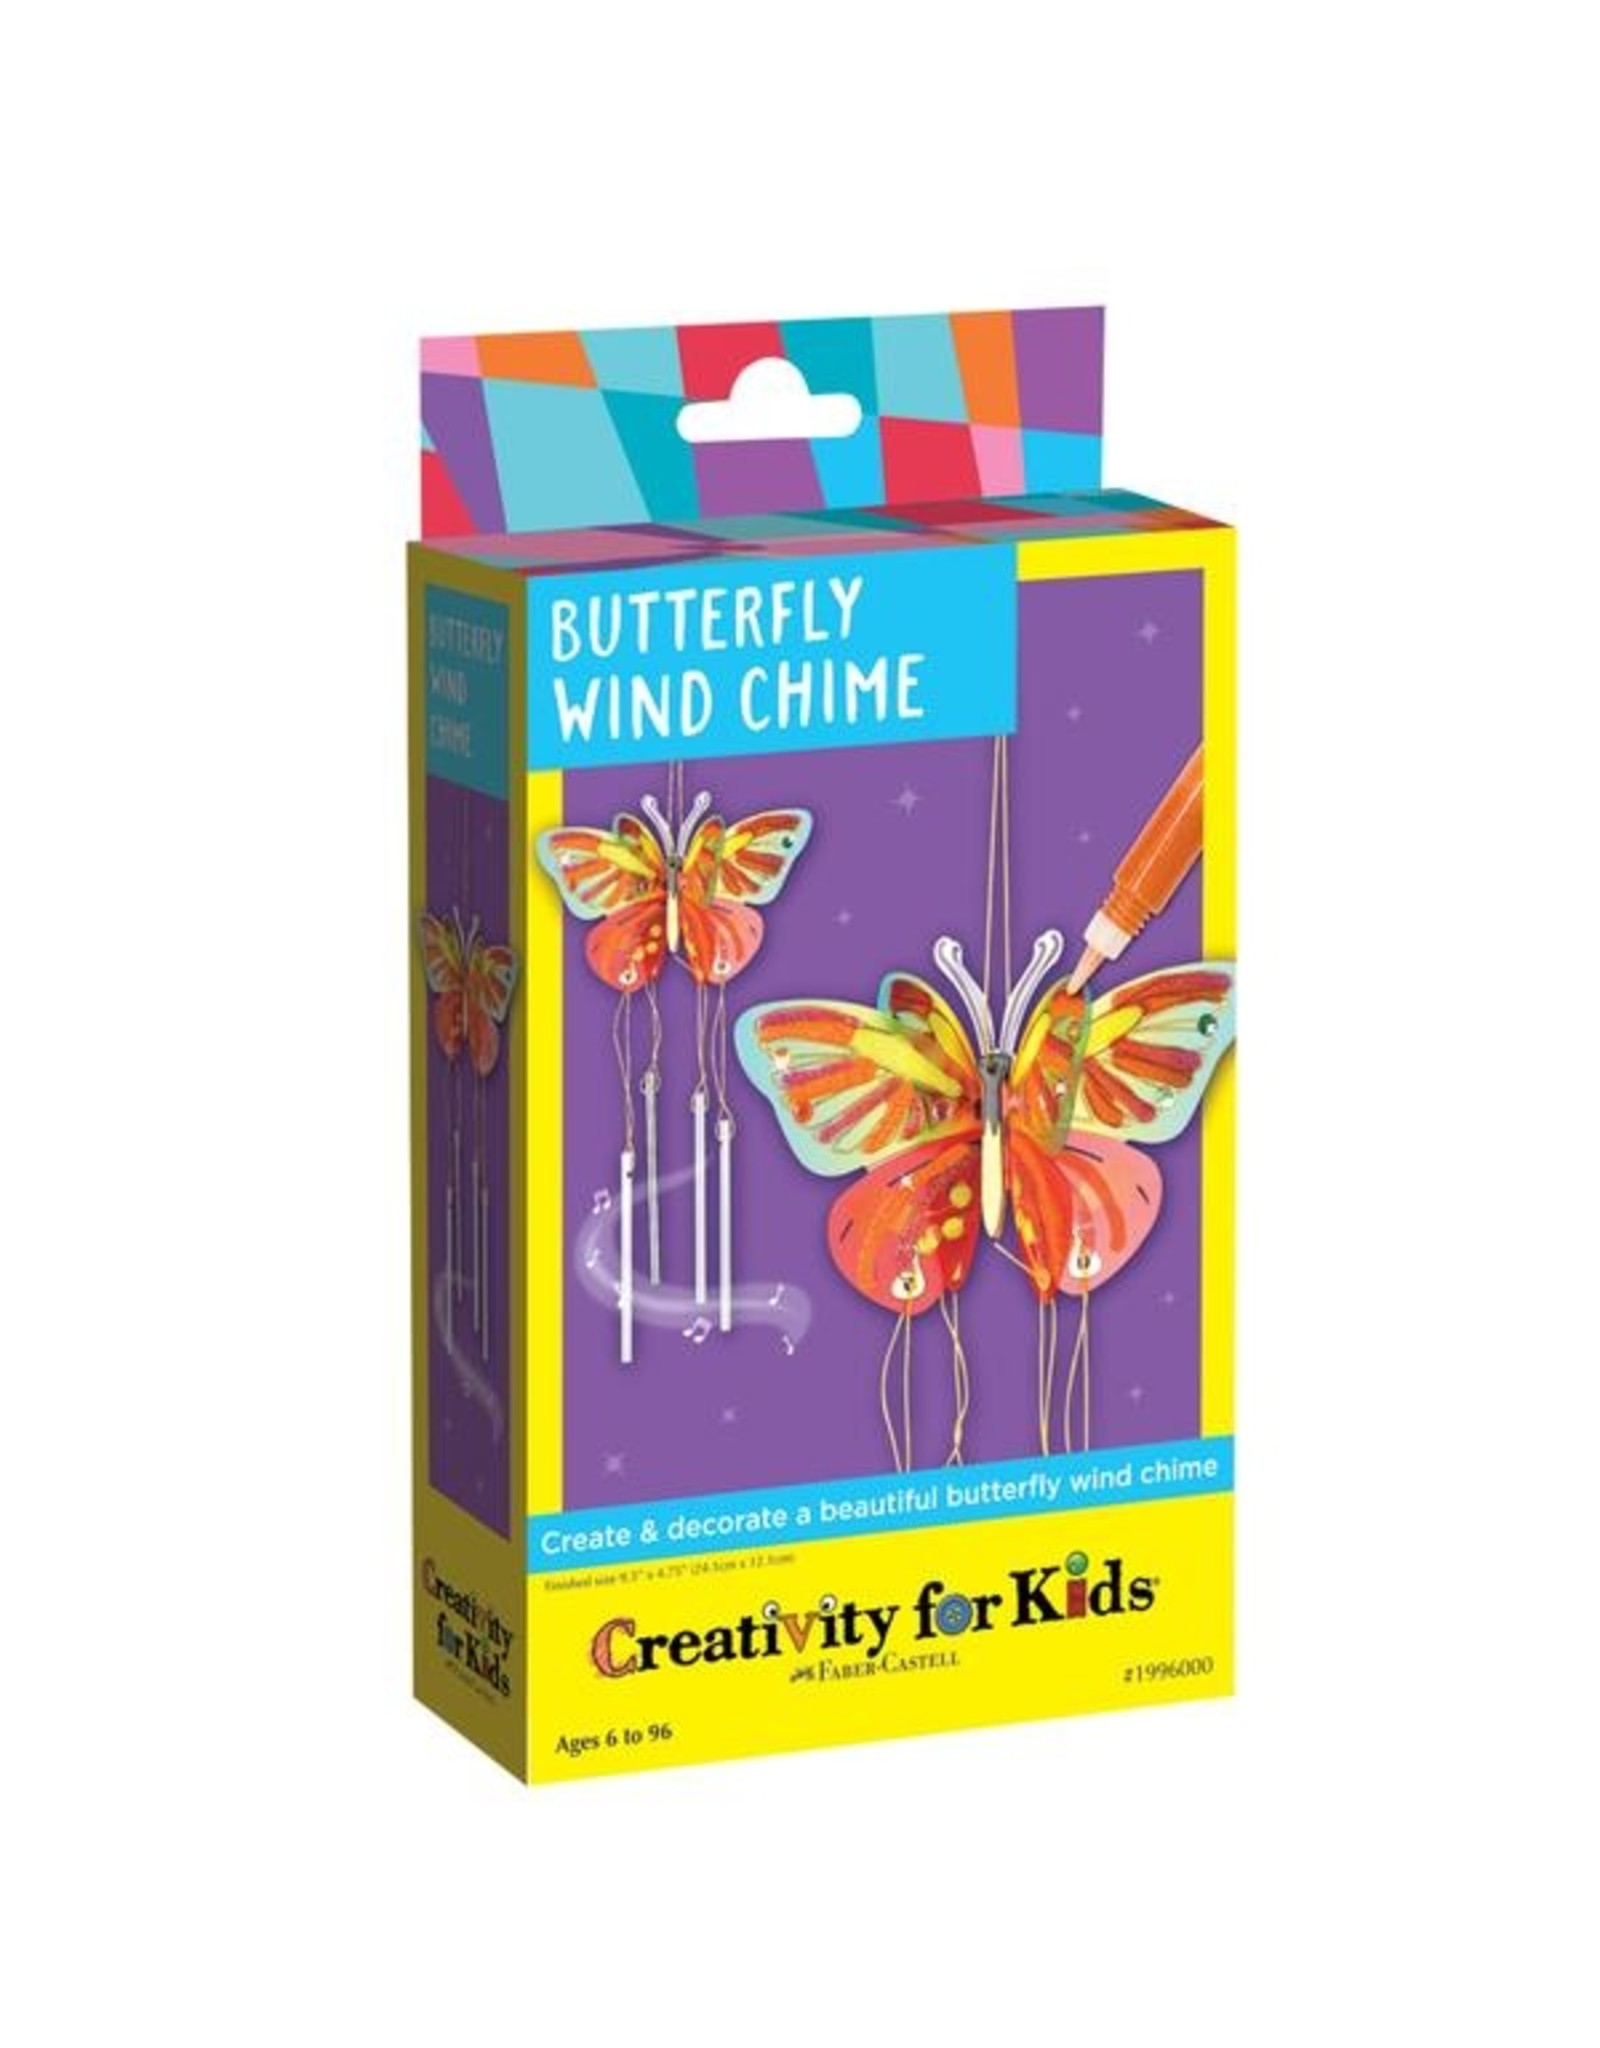 Creativity for Kids Butterfly Wind Chime